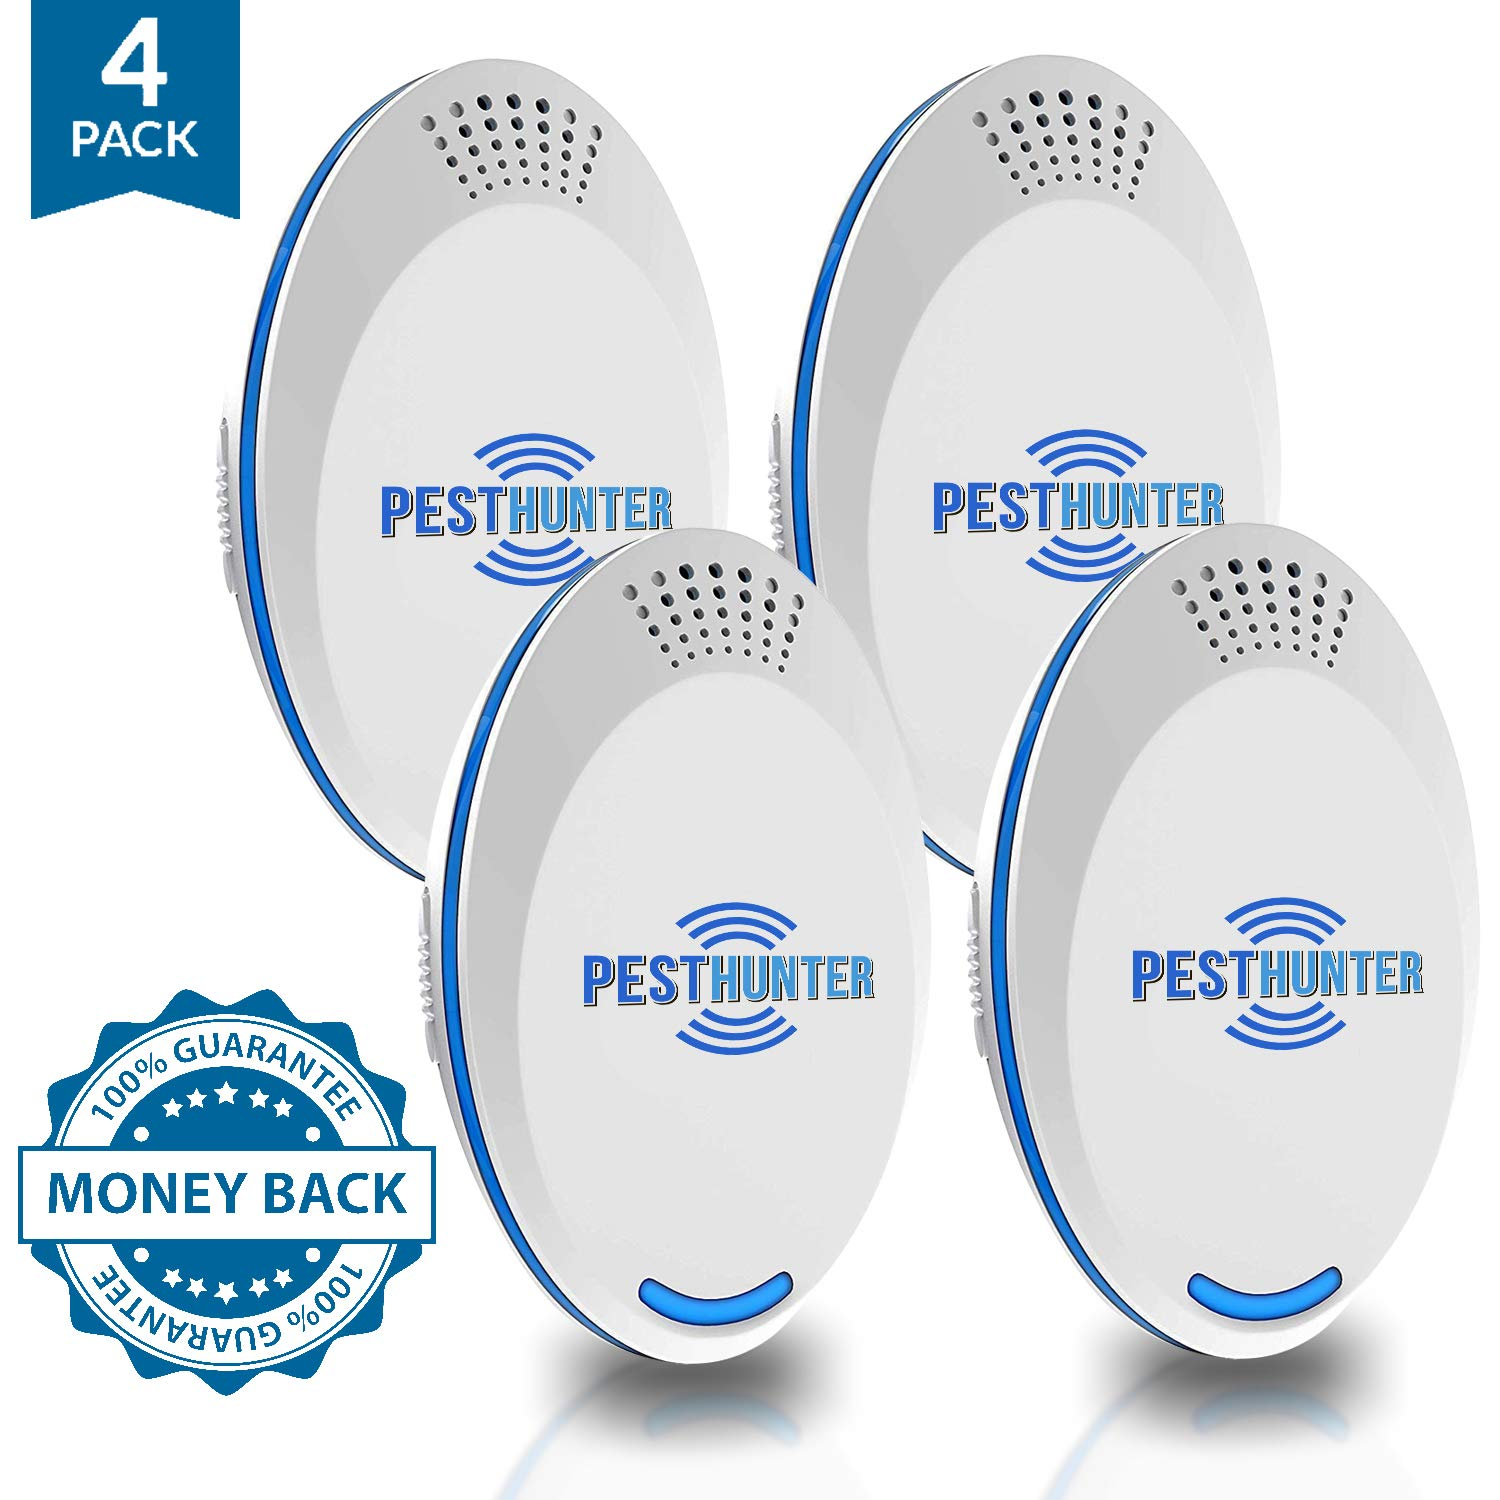 UPGRADED Ultrasonic Pest Defender - 2019 Plug in Pest Repeller (4-Pack) - Indoor Ultrasound Control Repellant - for Micе Rаts Mоsquitos Spidеrs Rоdents Insеcts by PestHunter